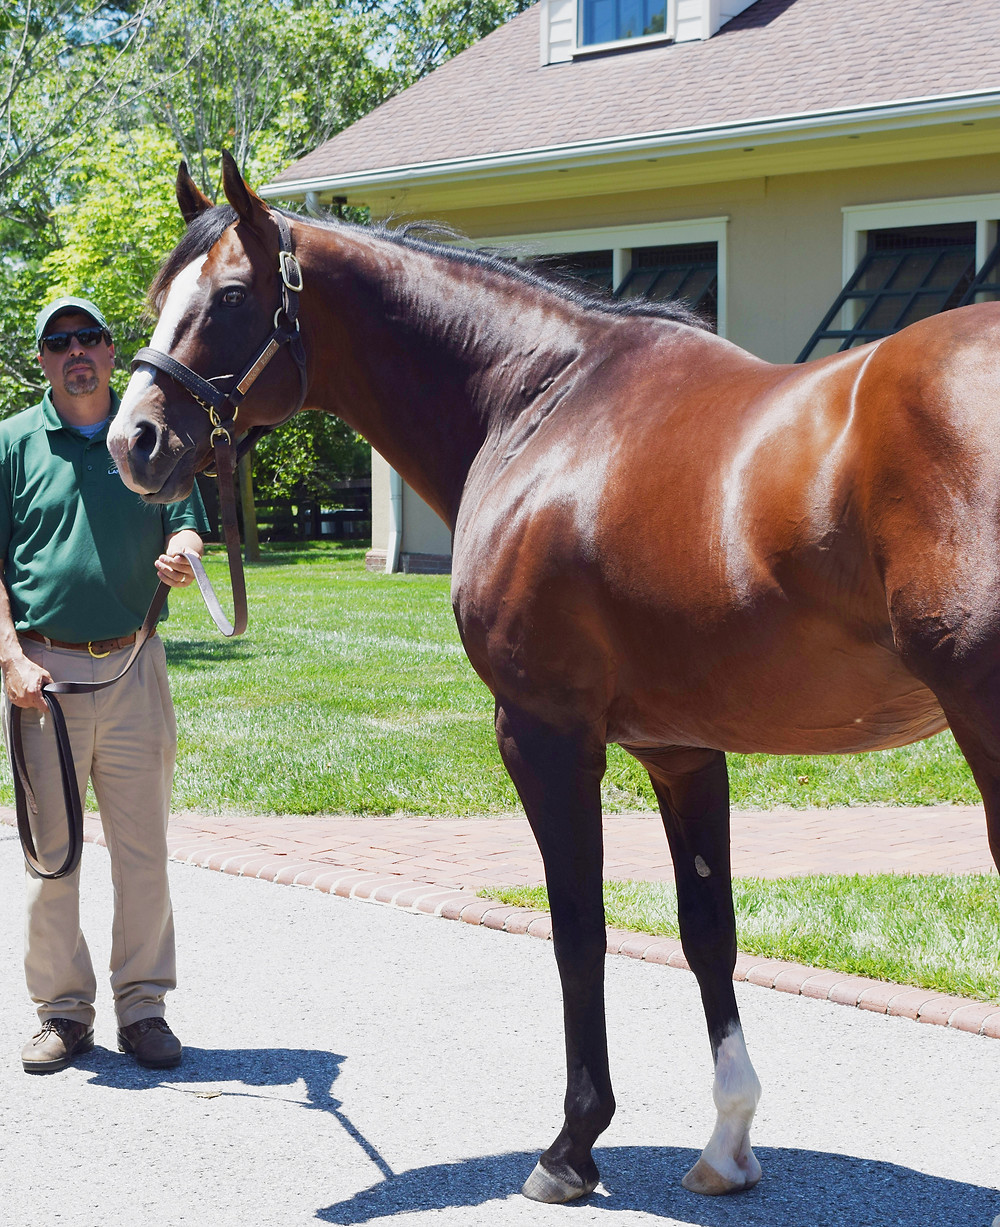 Union Rags, 2012 Belmont Stakes winner, at Lane's End Farm. Visit Horse Country Tour